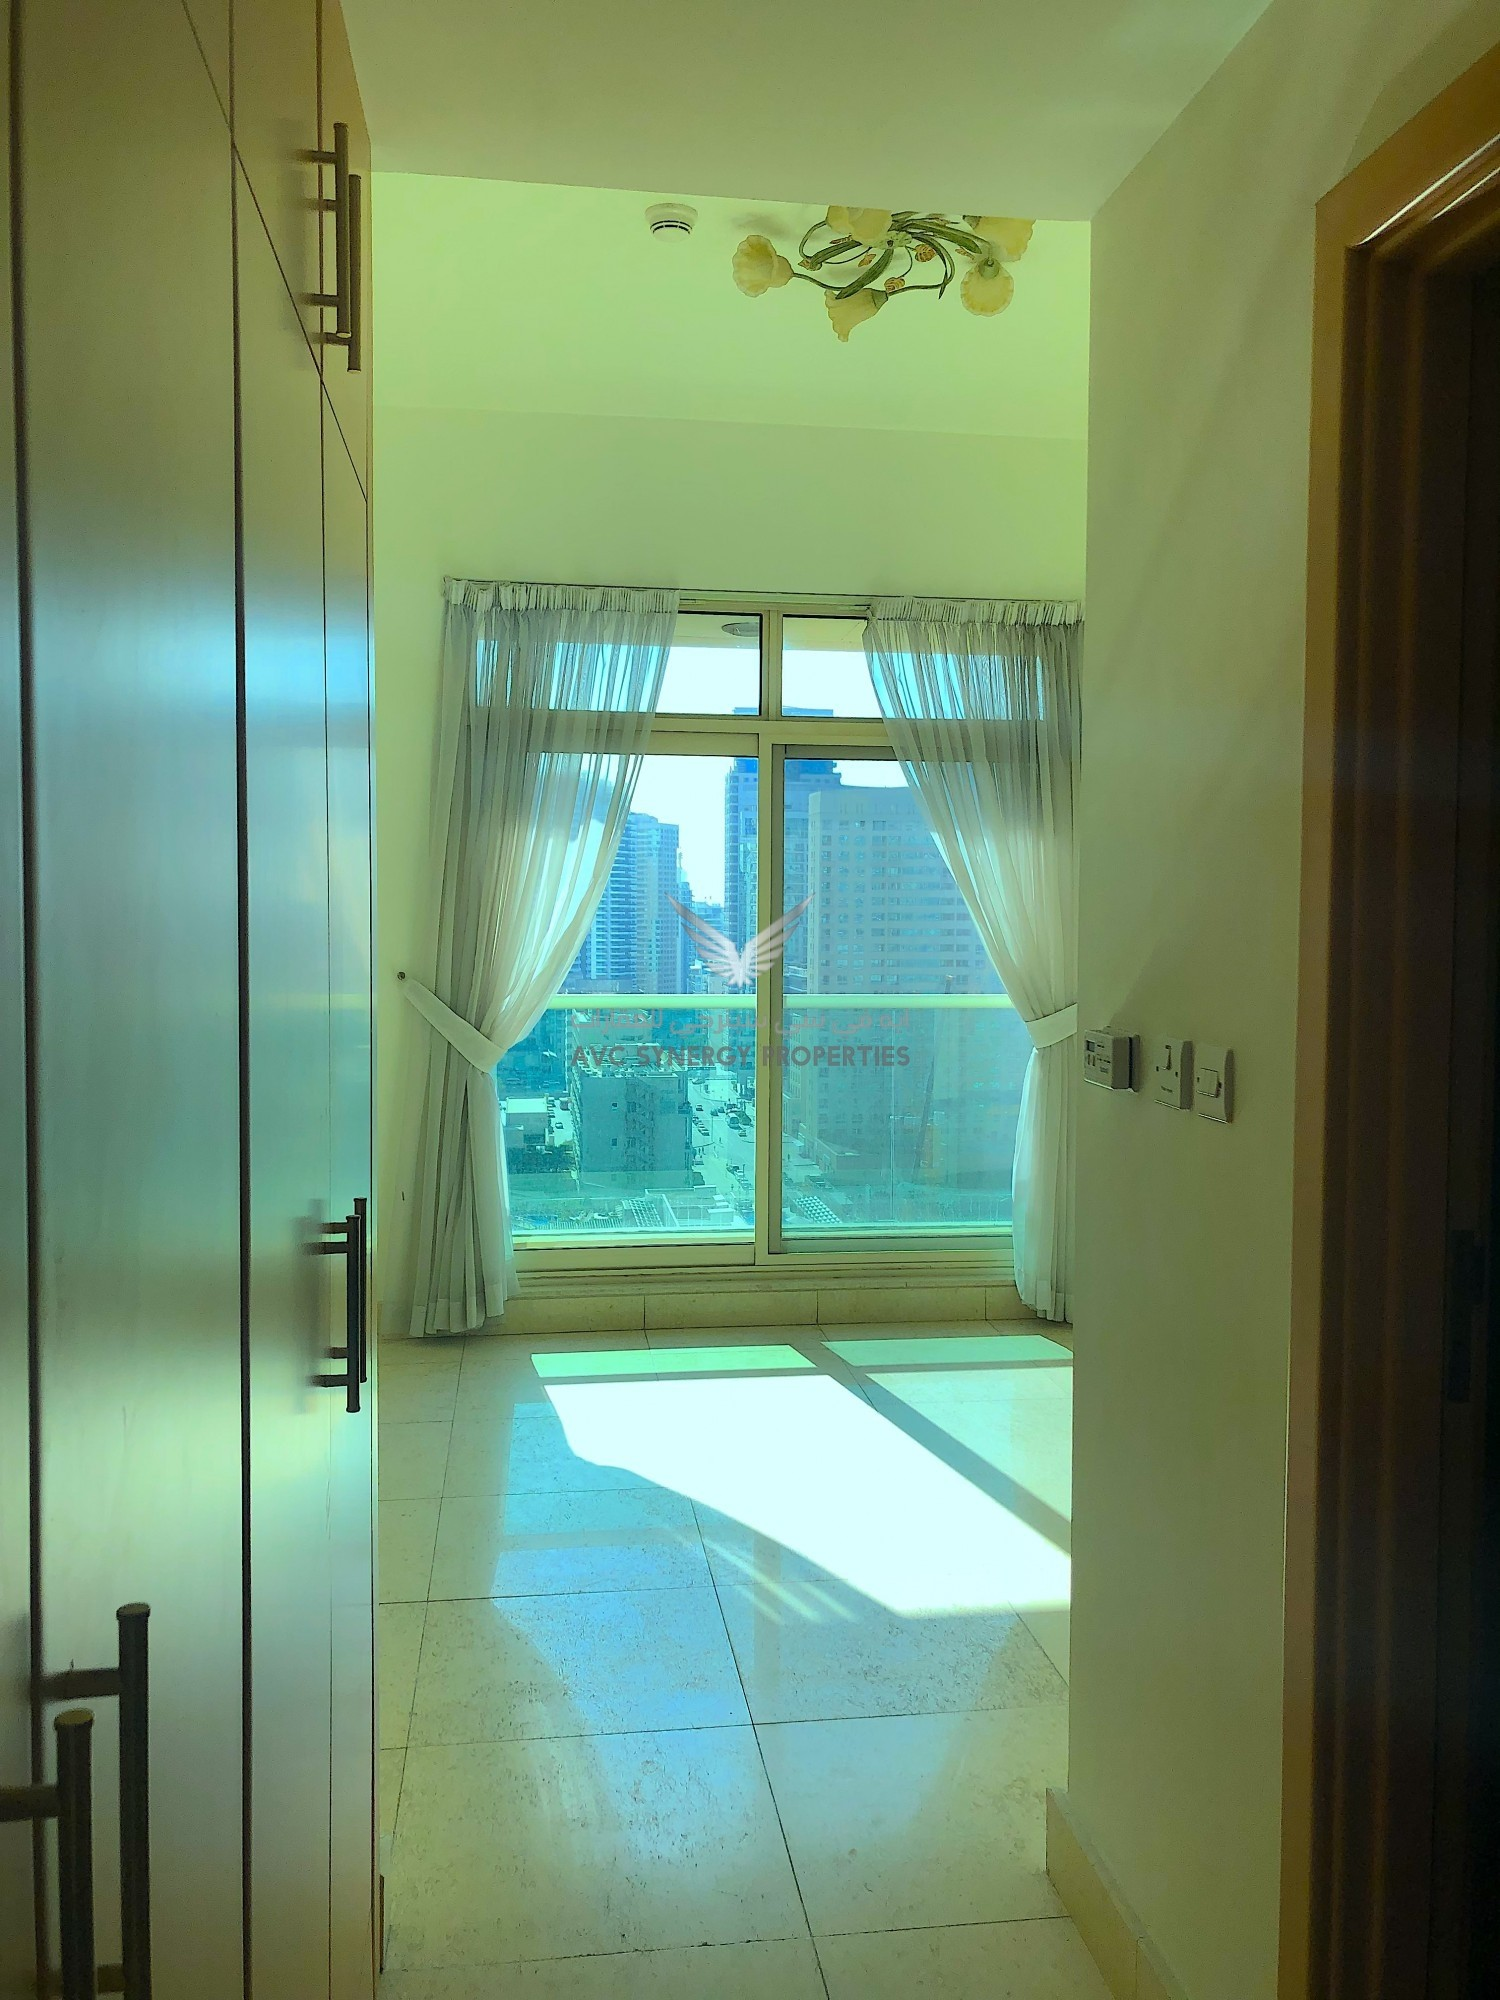 *** HOT DEAL *** 3BHK + MAID ROOM  |  READY TO MOVE | STUNNING VIEW